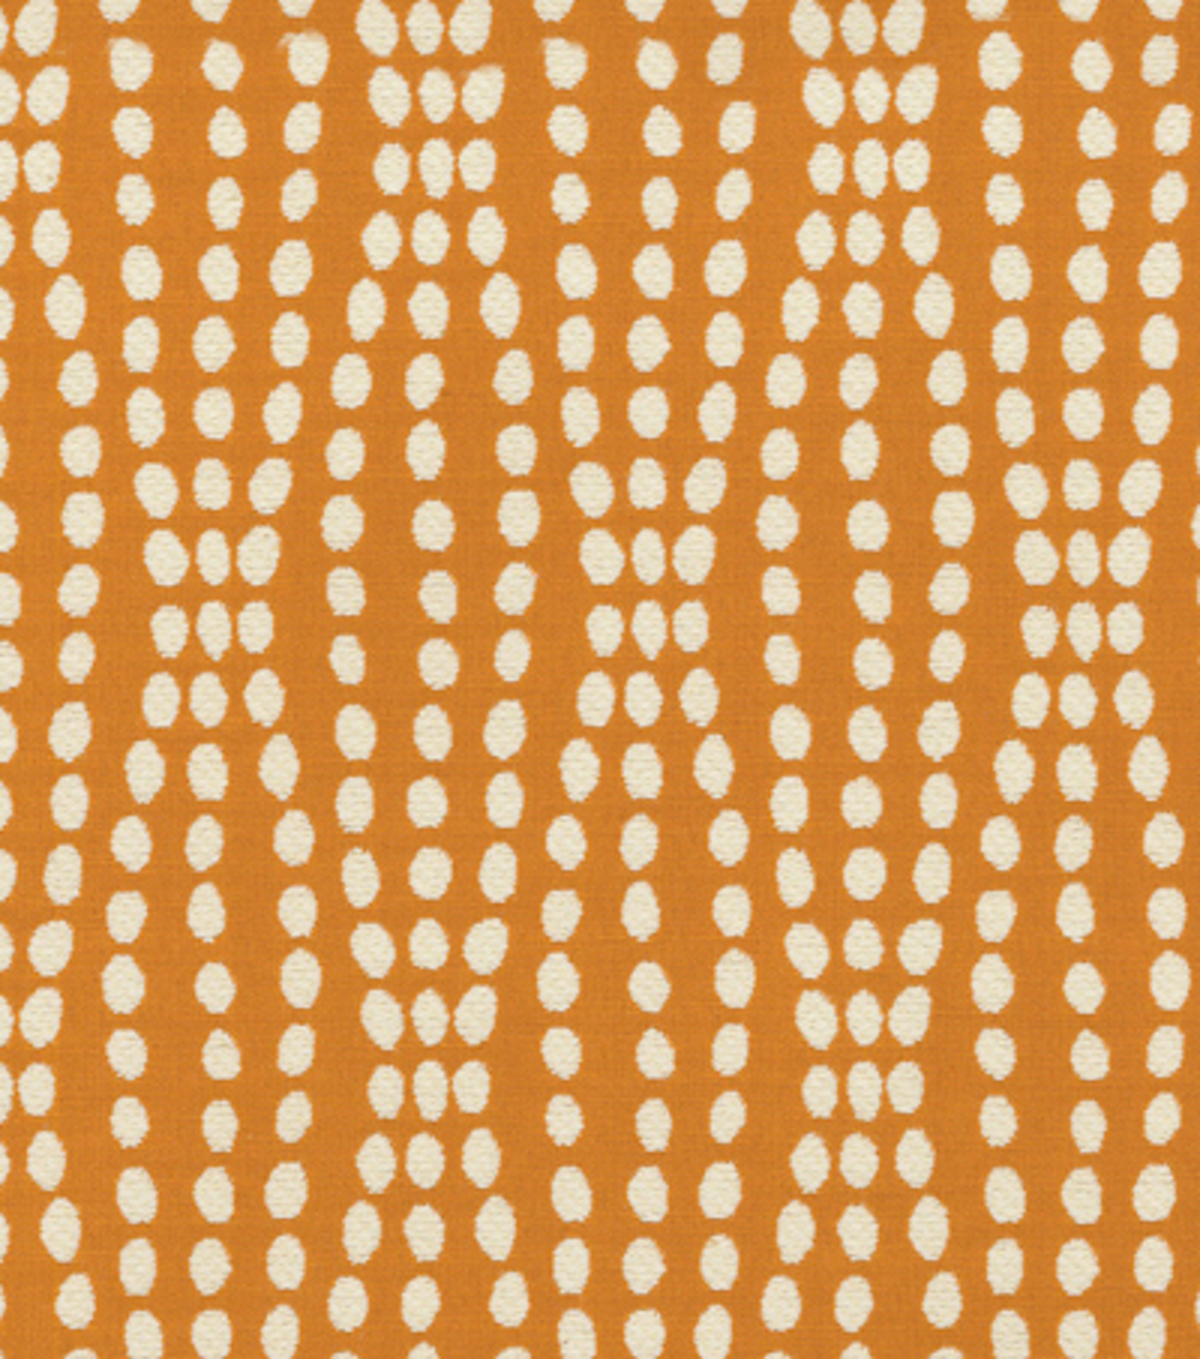 Home Decor 8\u0022x8\u0022 Fabric Swatch-Upholstery Fabric-Waverly Strands/Tiger Lily